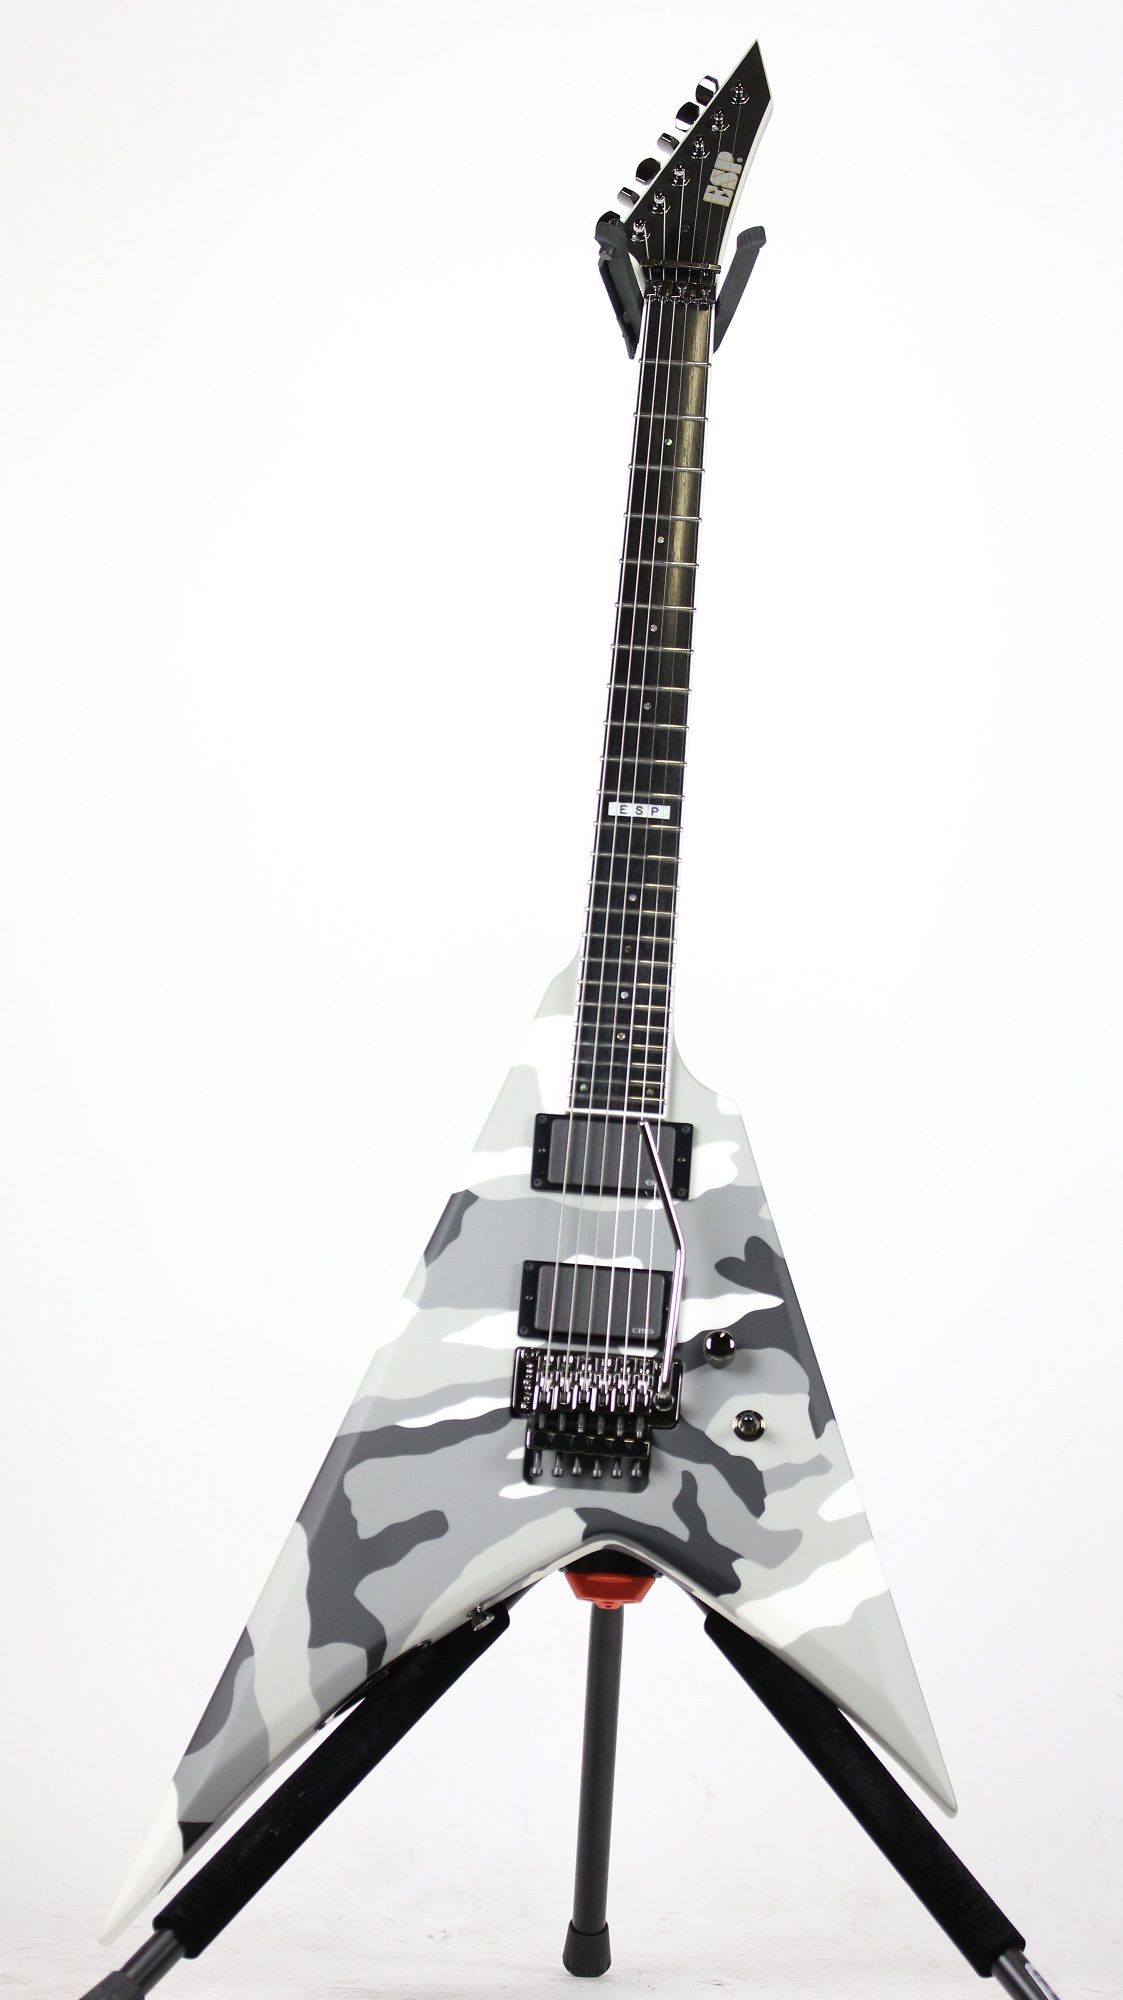 esp sv ii standard urban camo electric guitar 6. Black Bedroom Furniture Sets. Home Design Ideas